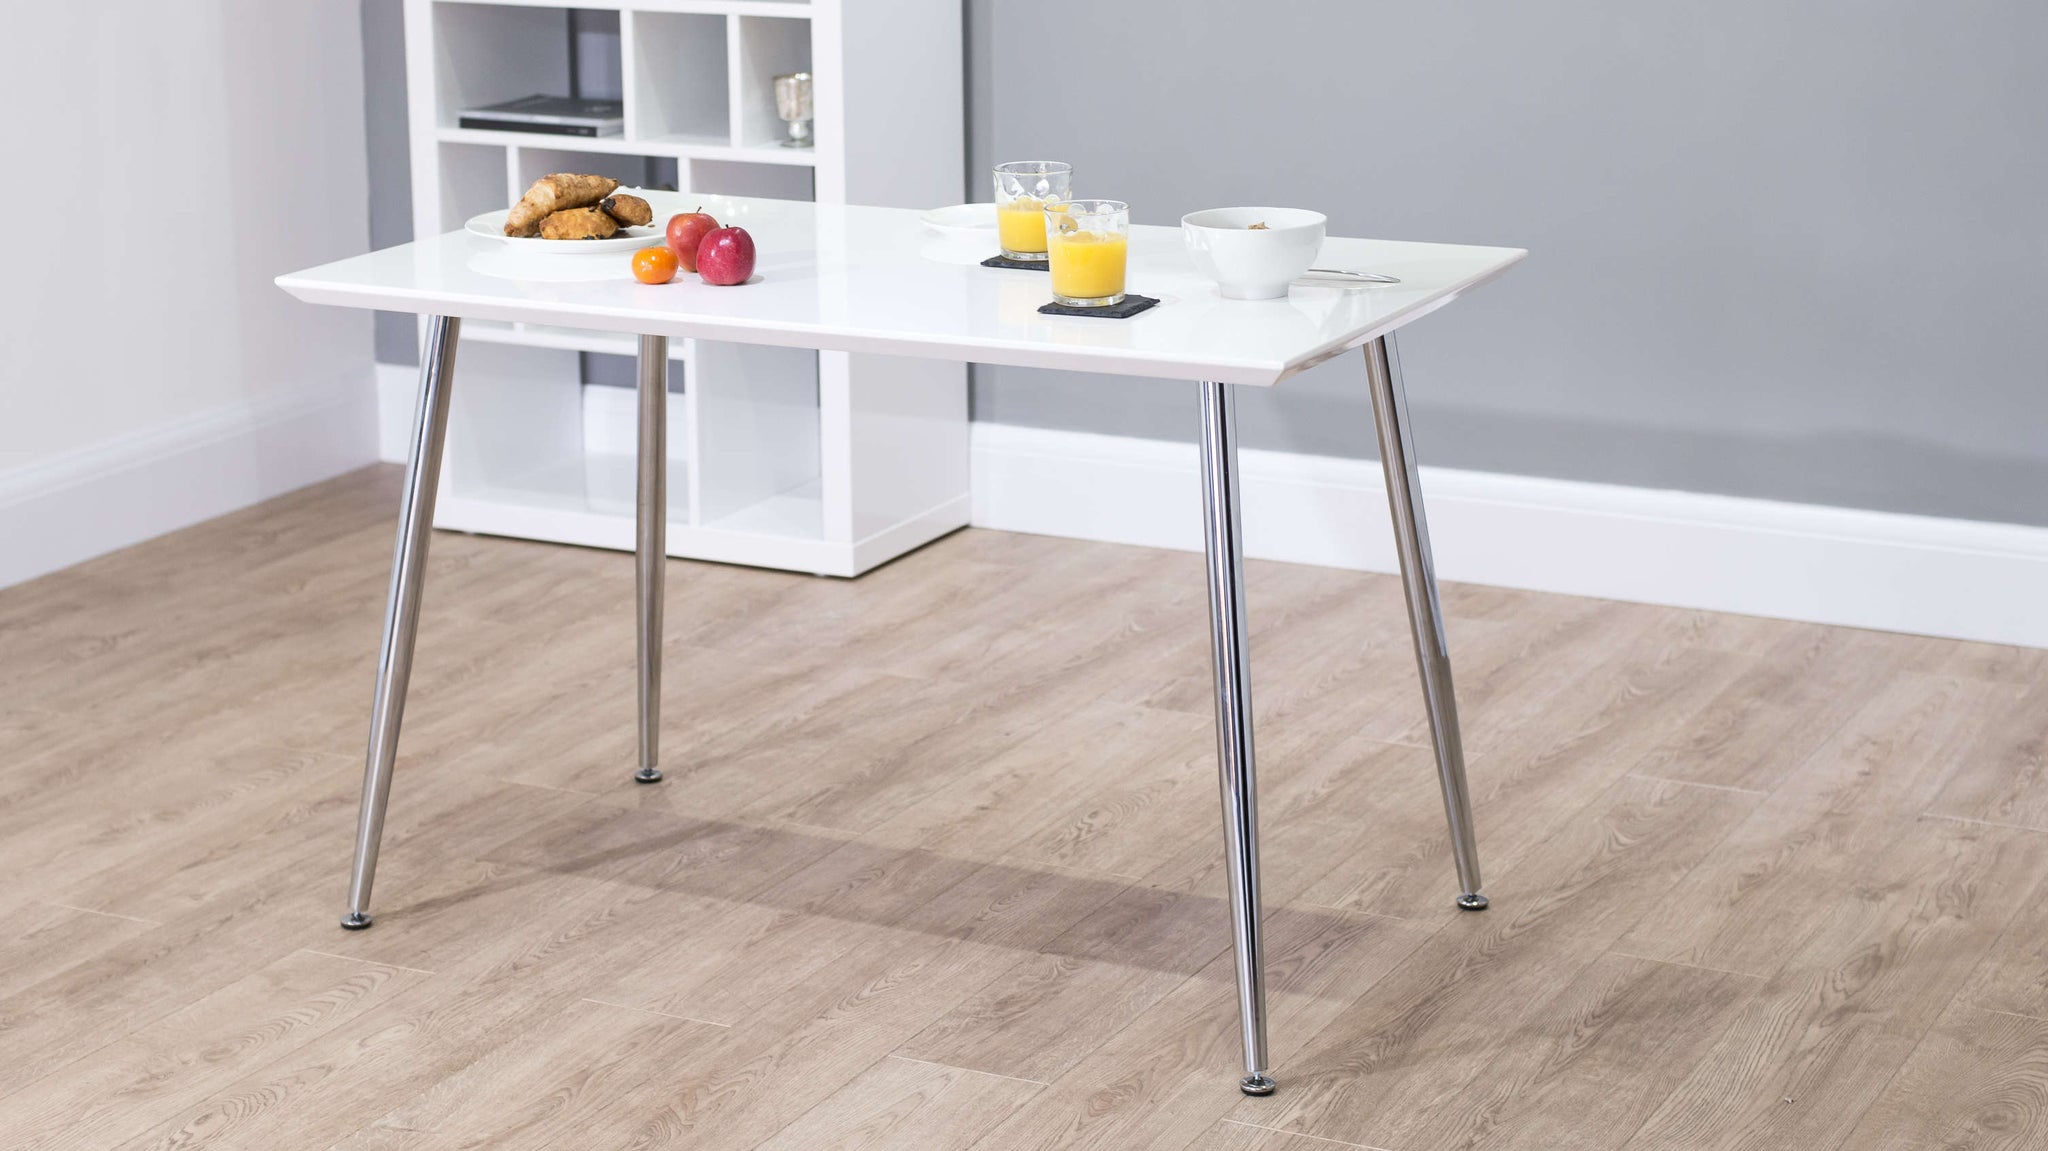 4-6 Seater White Gloss Dining Table UK